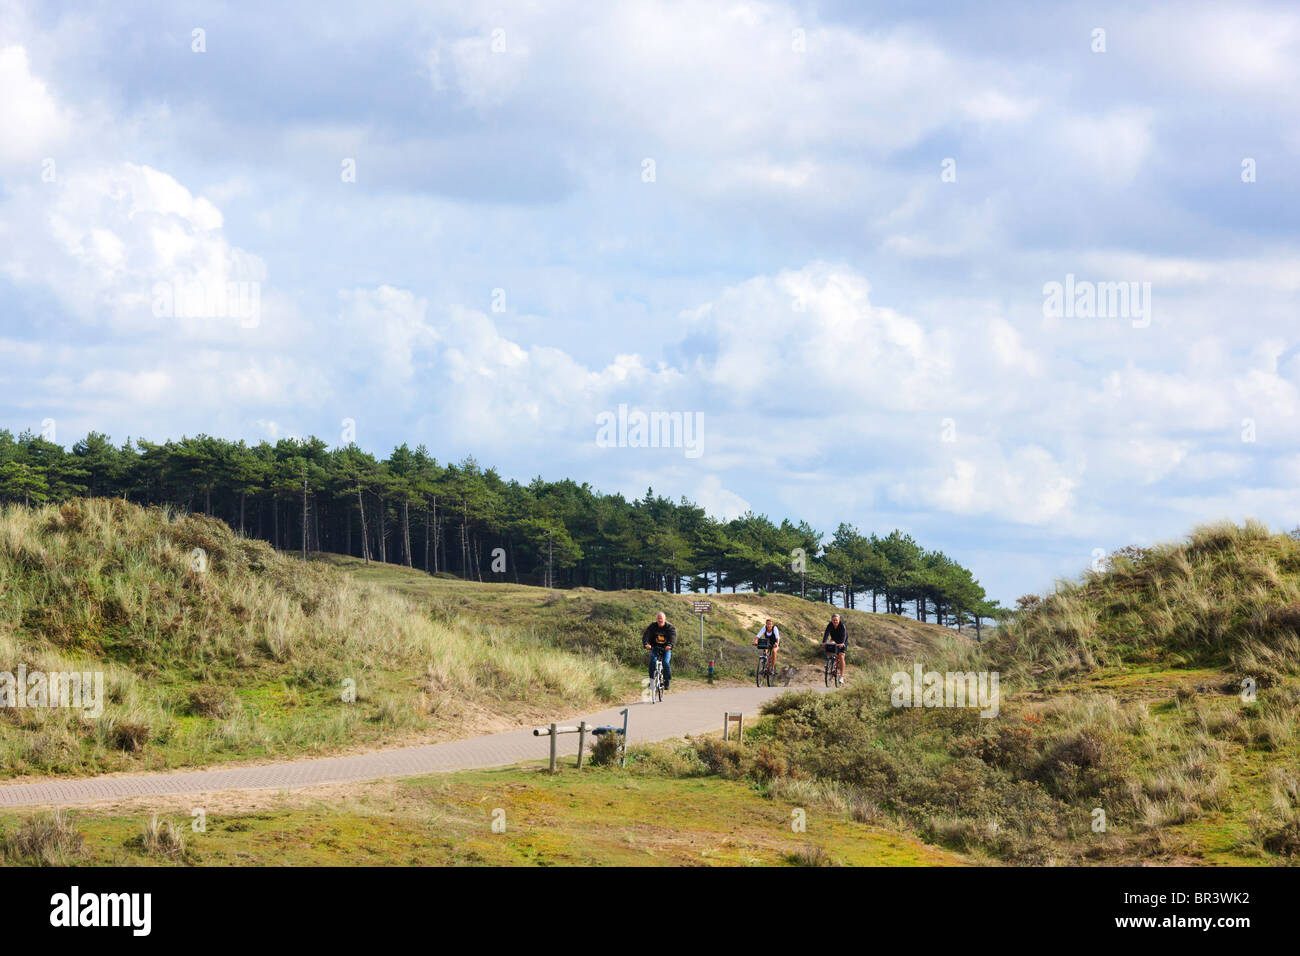 https://c7.alamy.com/comp/BR3WK2/bicycle-path-in-the-kennemerduinen-the-central-part-of-south-kennemerland-BR3WK2.jpg